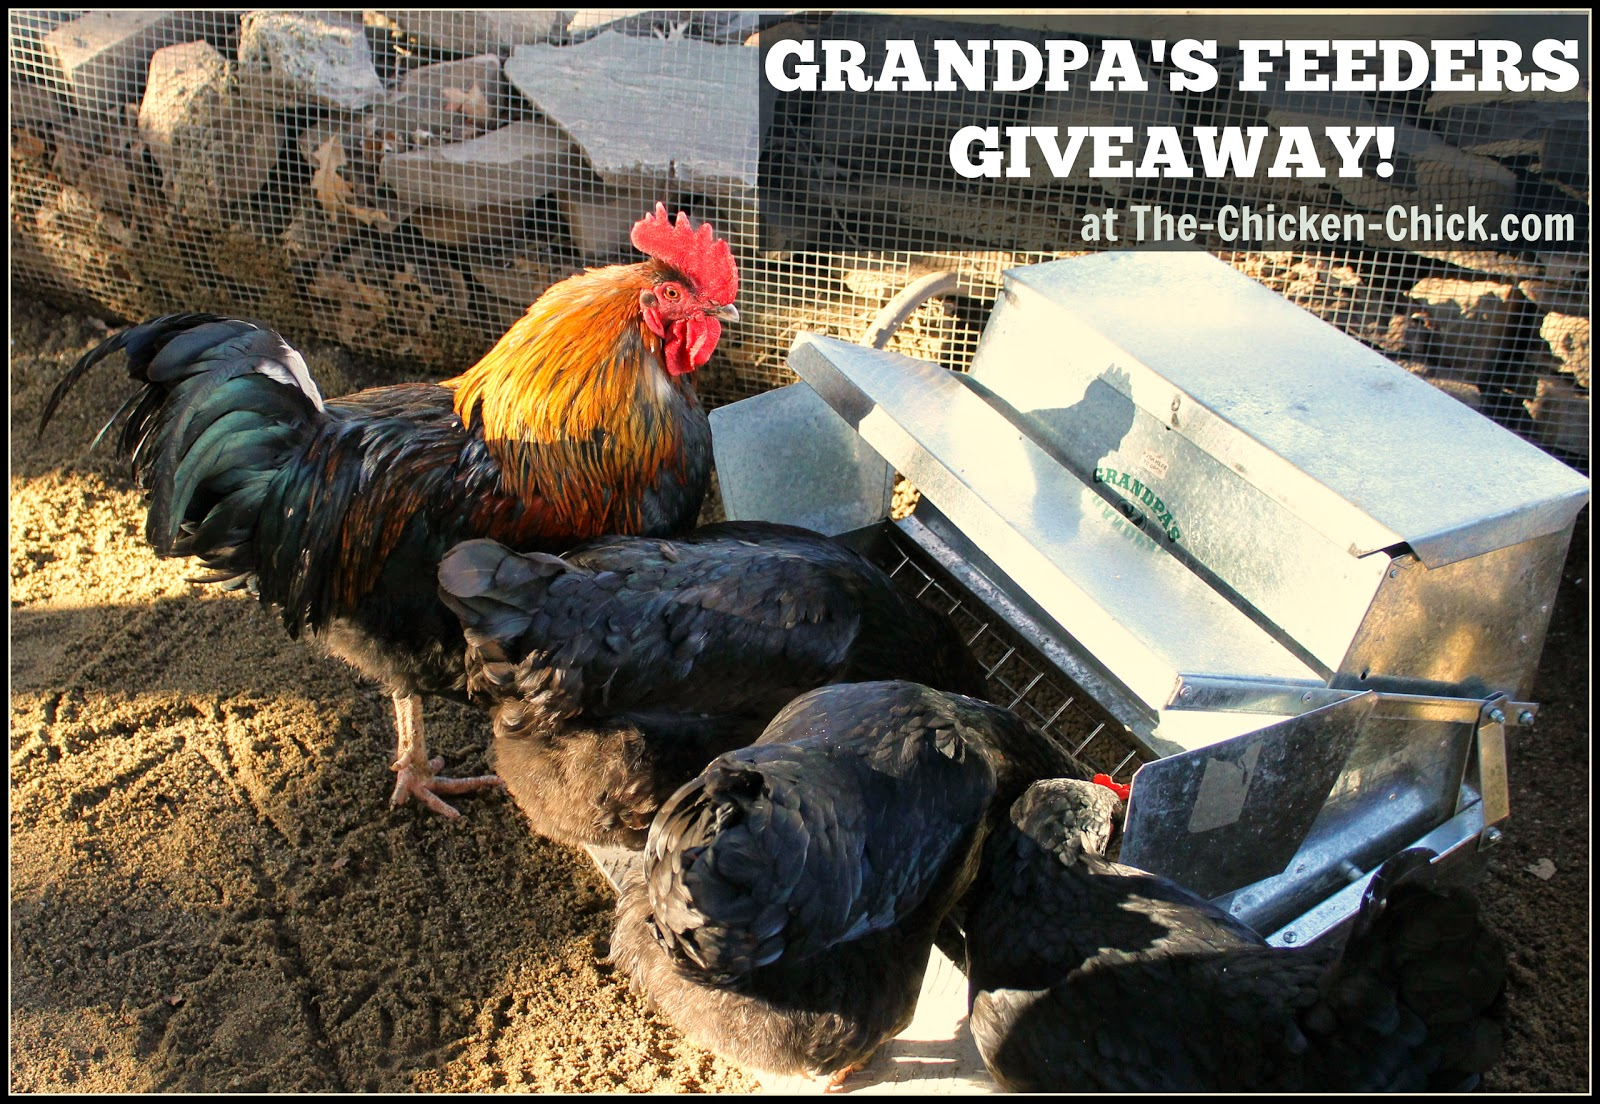 Grandpa's Feeders Giveaway at The-Chicken-Chick.com